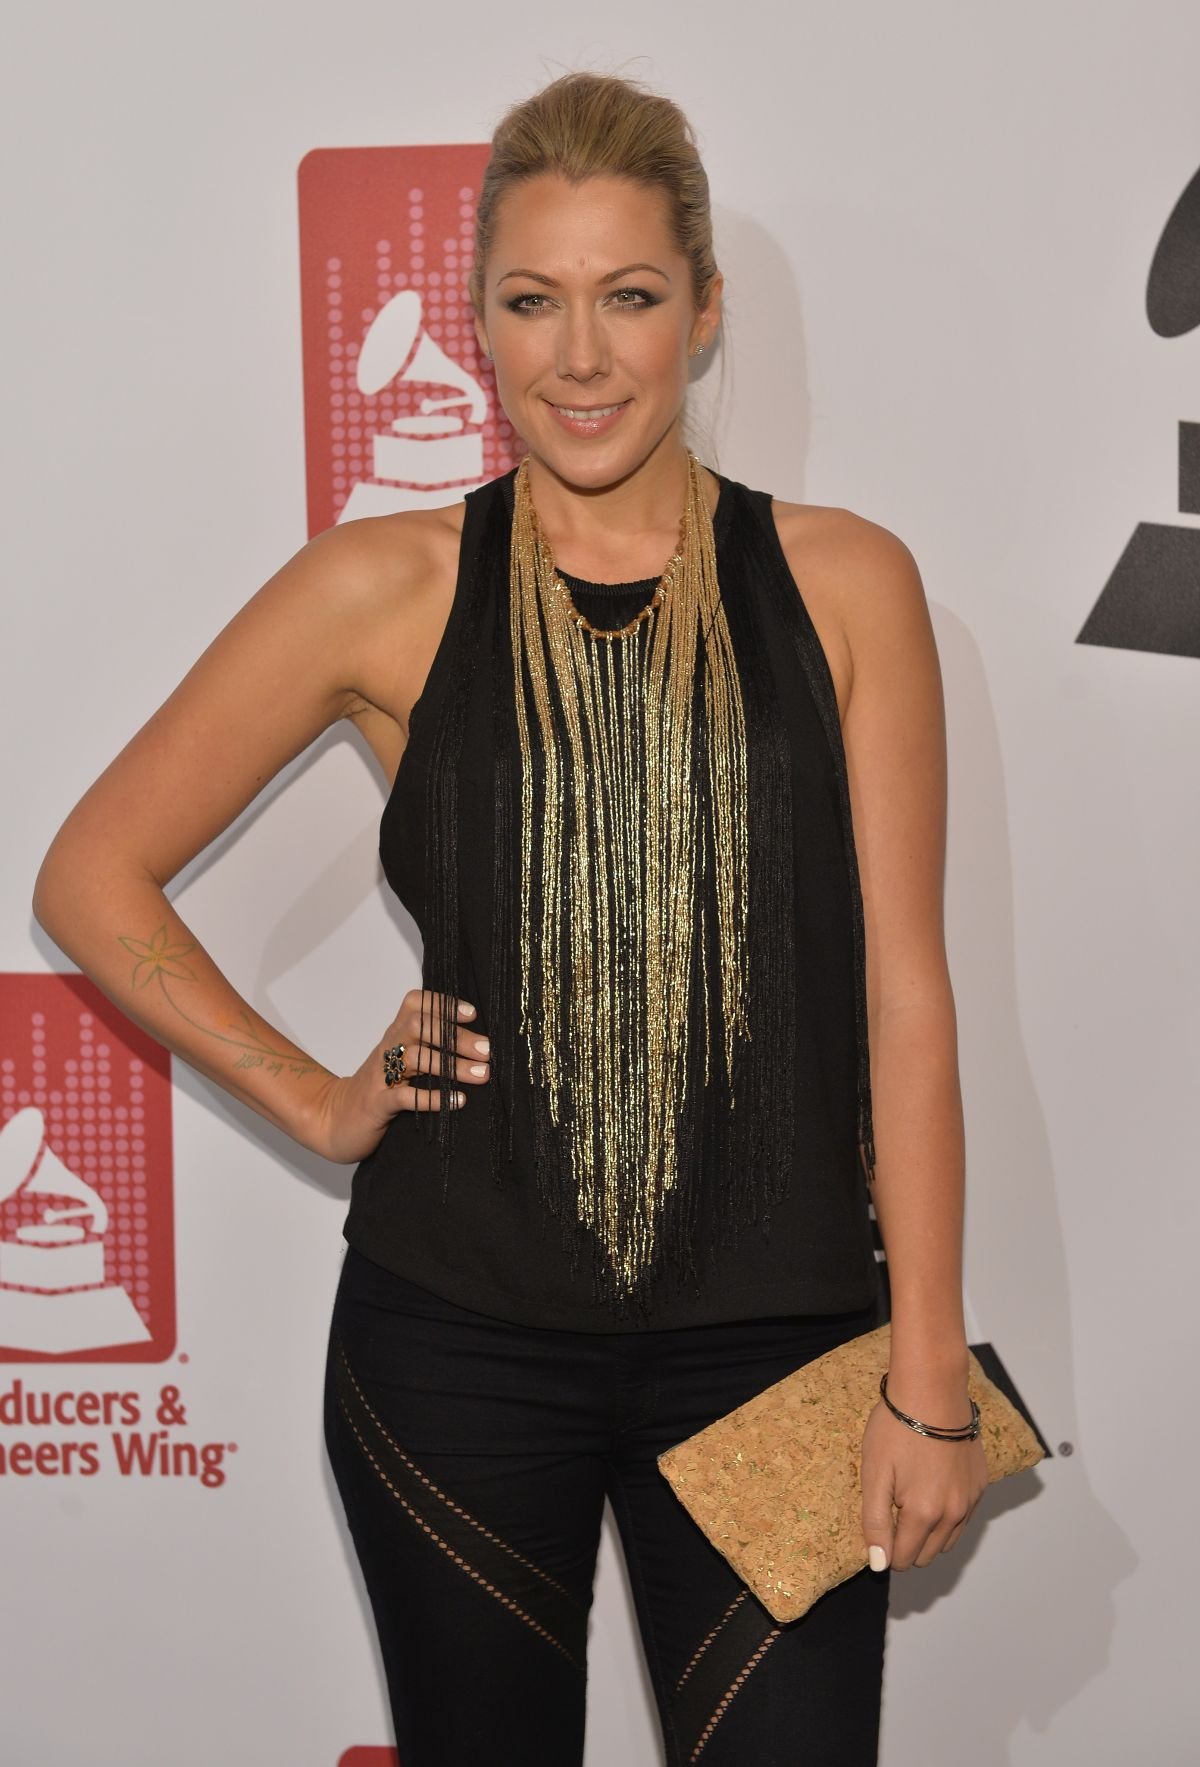 COLBIE CAILLAT at 56th Grammy Awards Producers and Engineers Wing Event Honoring Neil Young